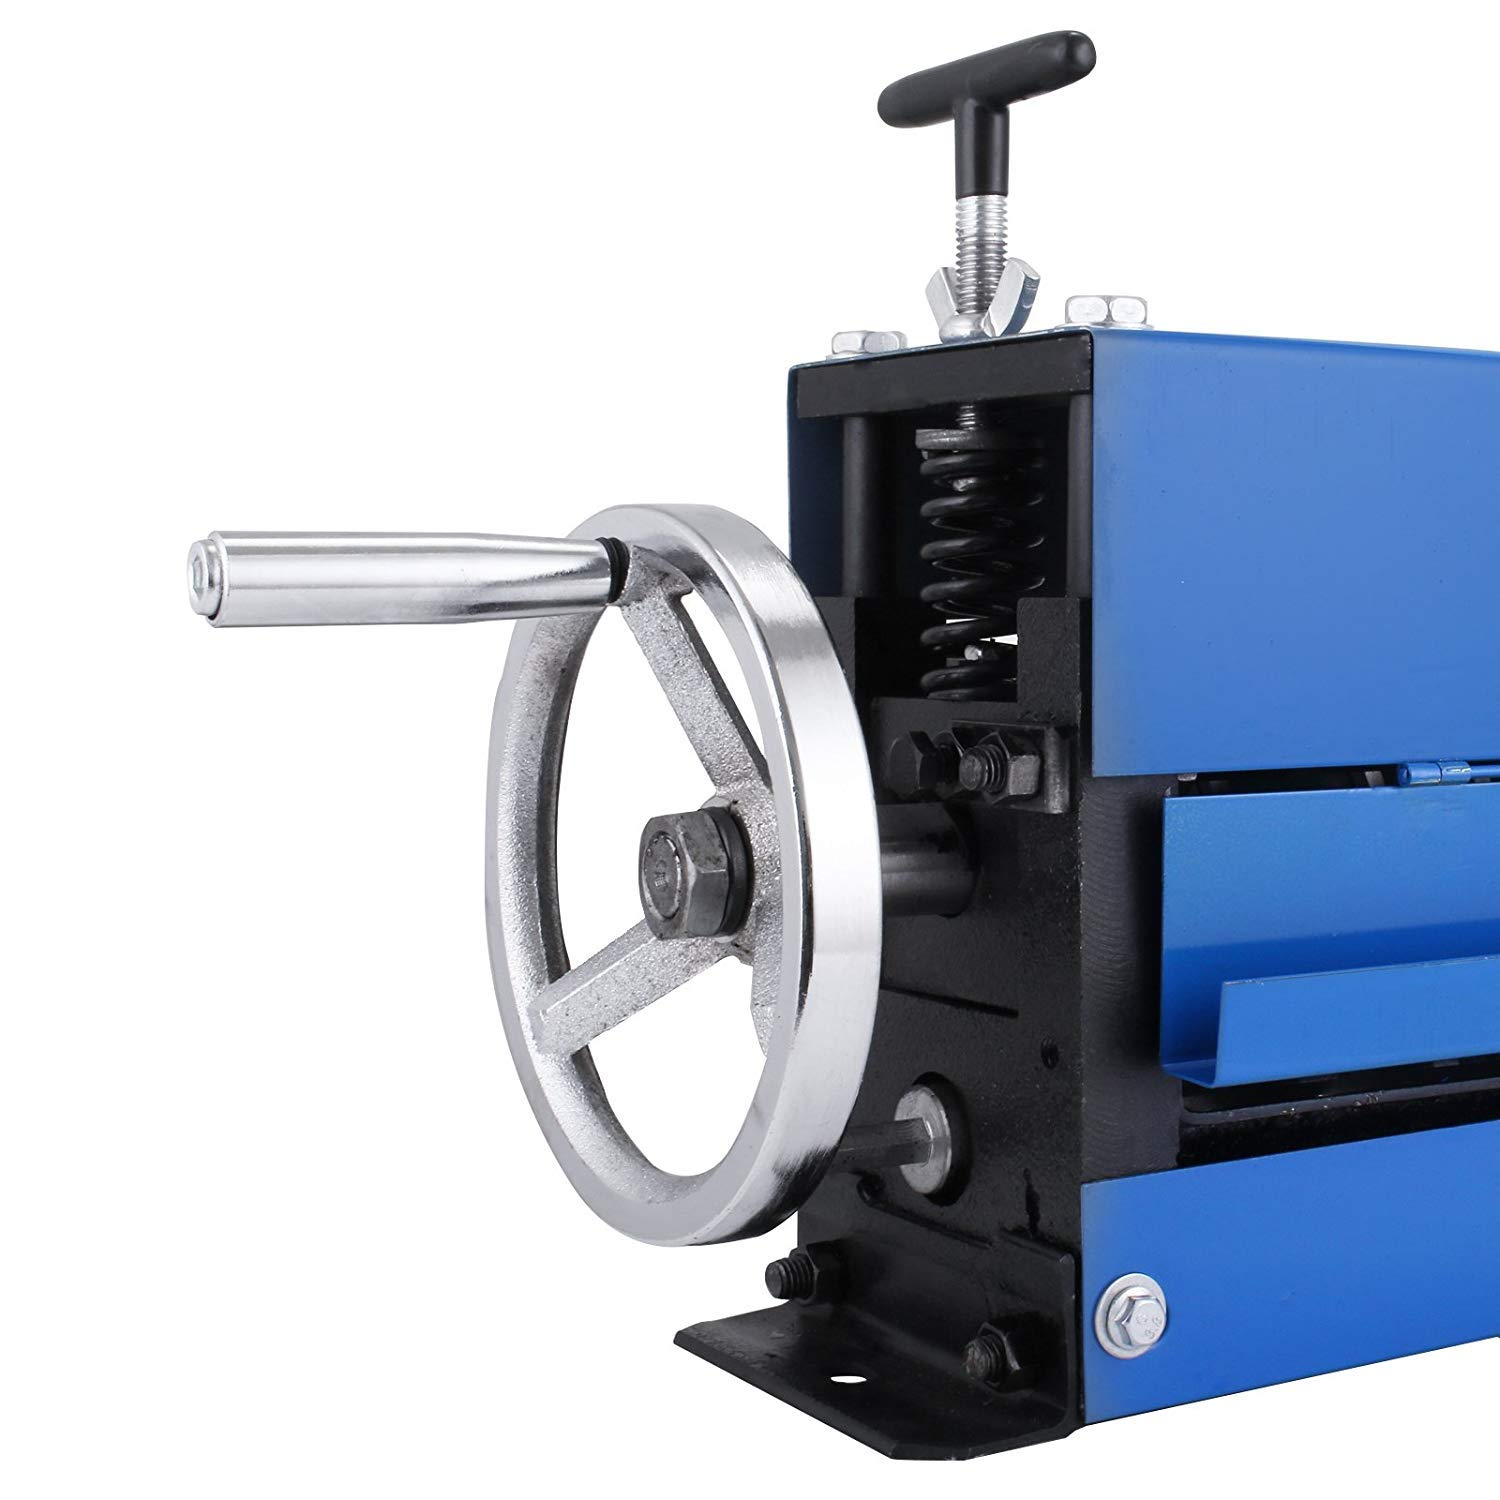 Mophorn Cable Wire Stripping Machine 10 Strip Channels Manual Wire Stripper Diameter 1-20MM Cable Striper Machine